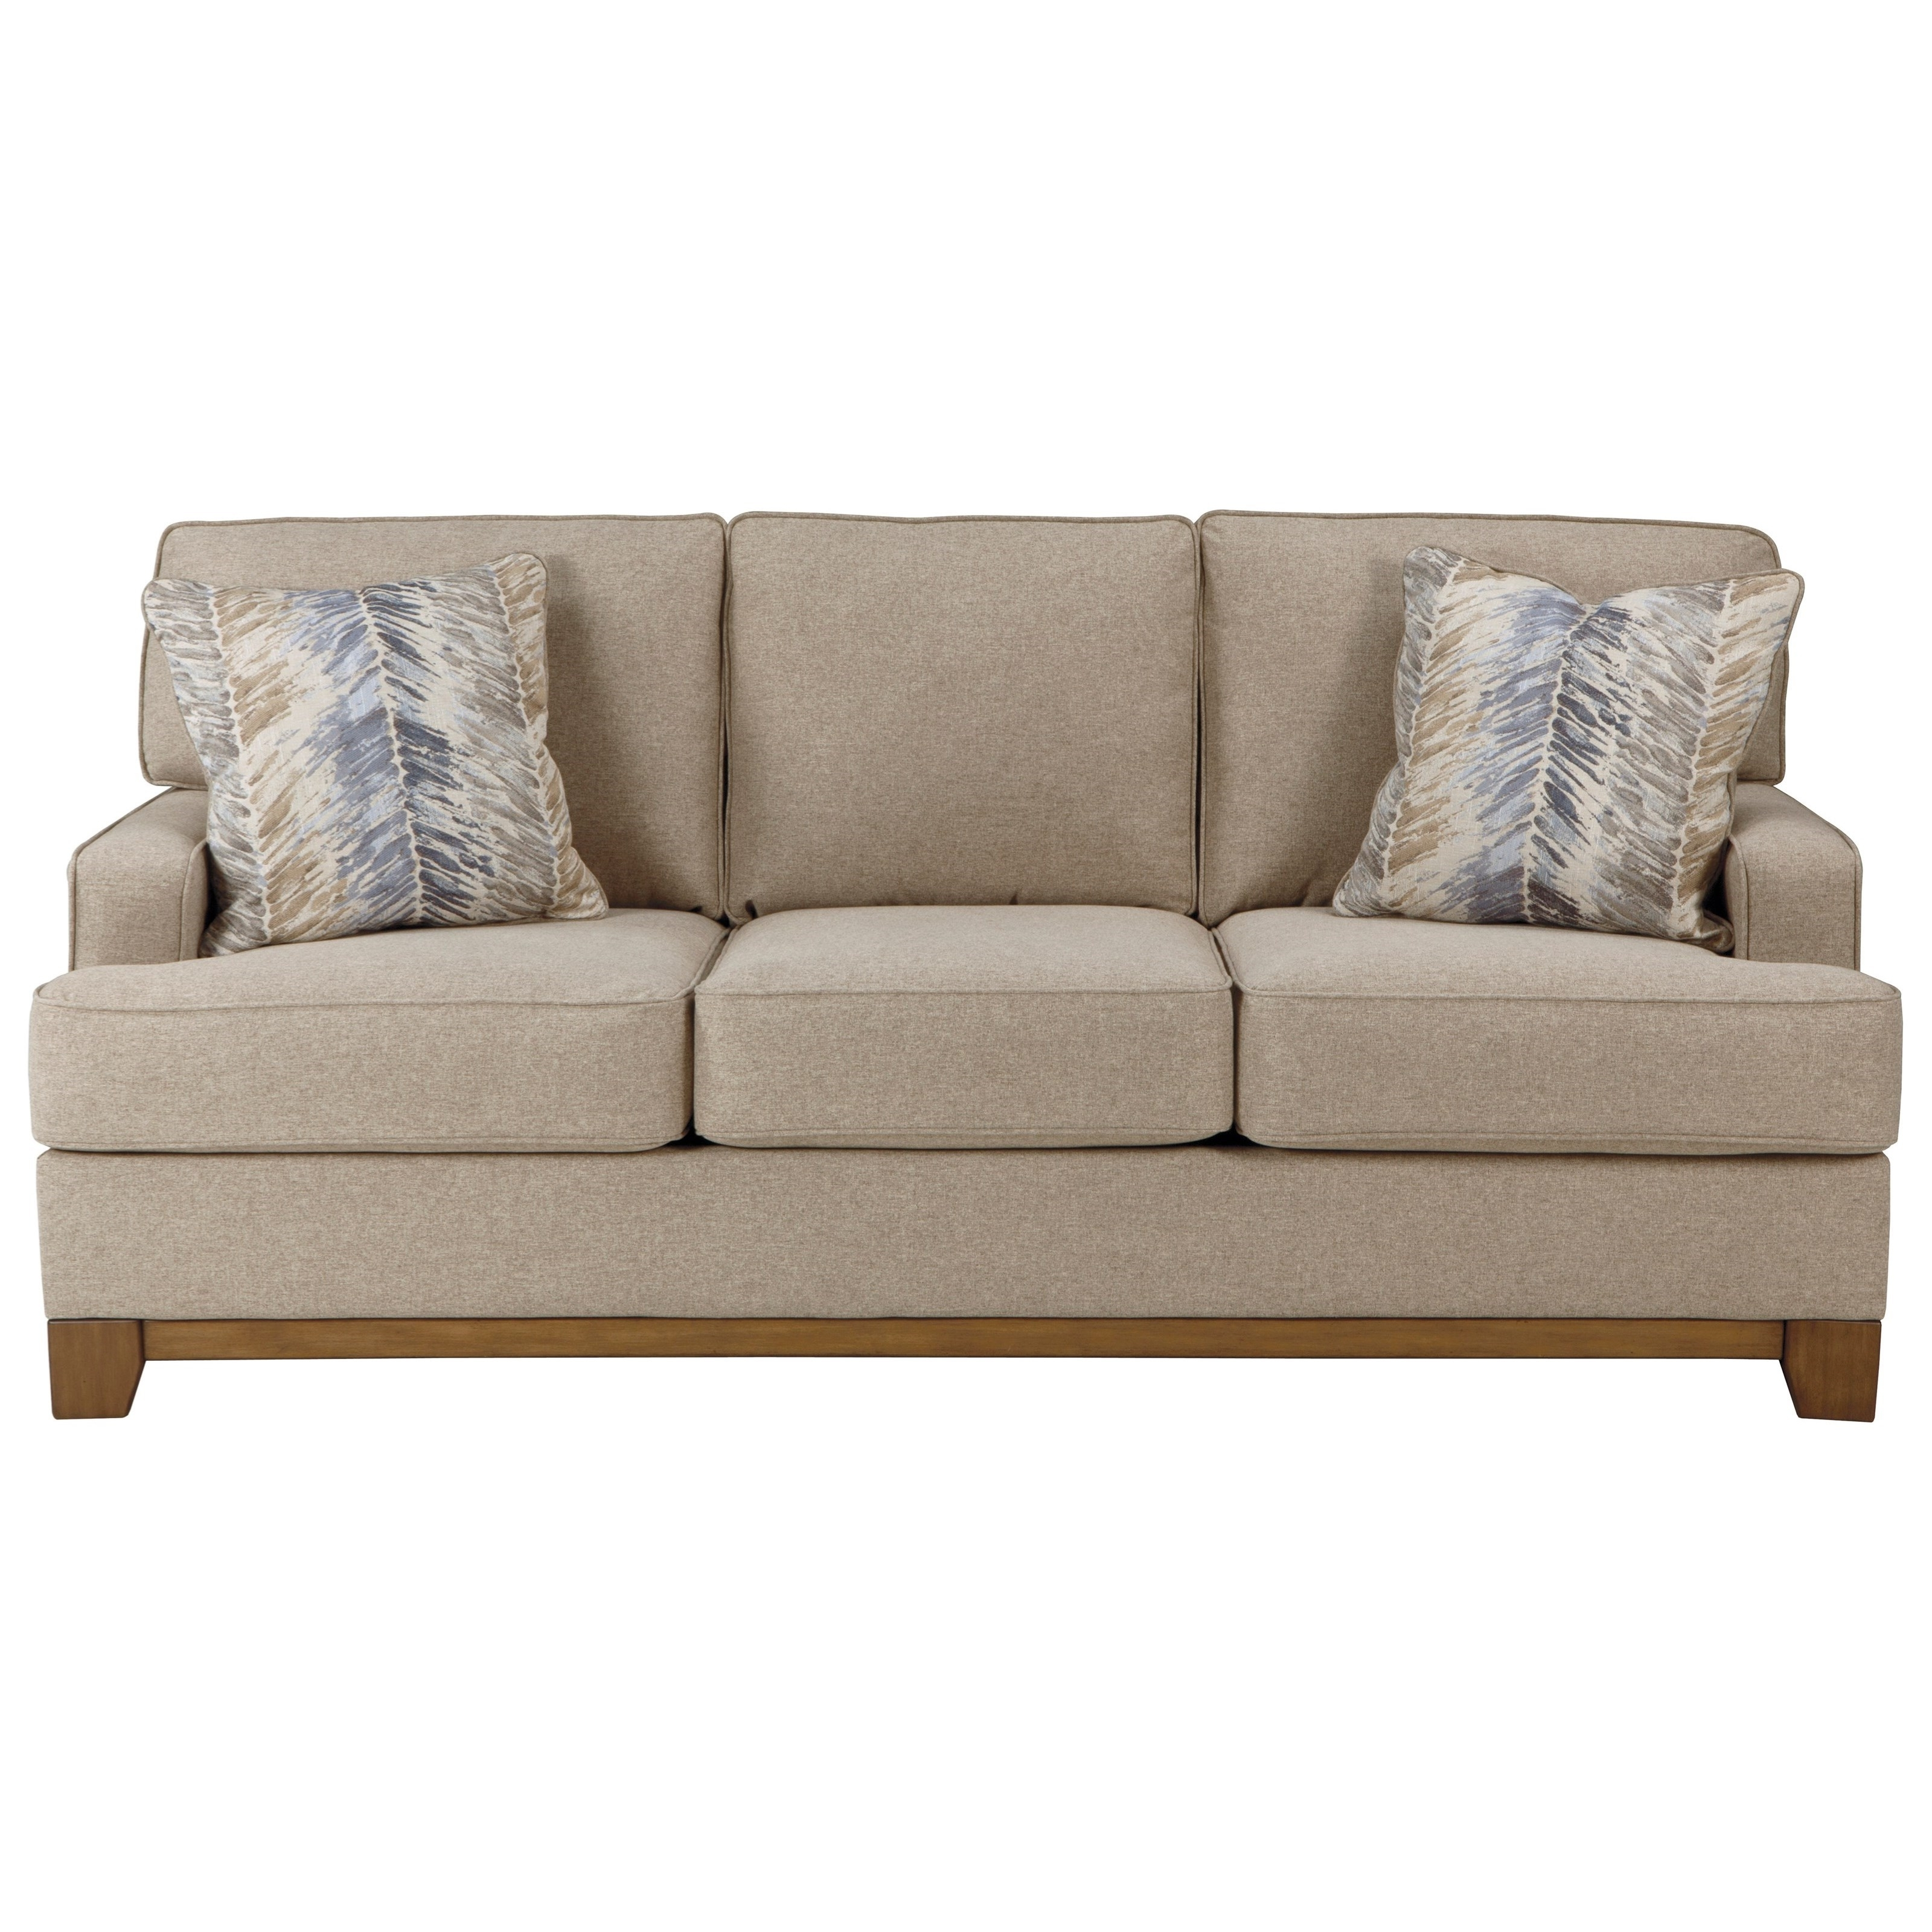 Best And Newest Shop Sofas (View 18 of 20)